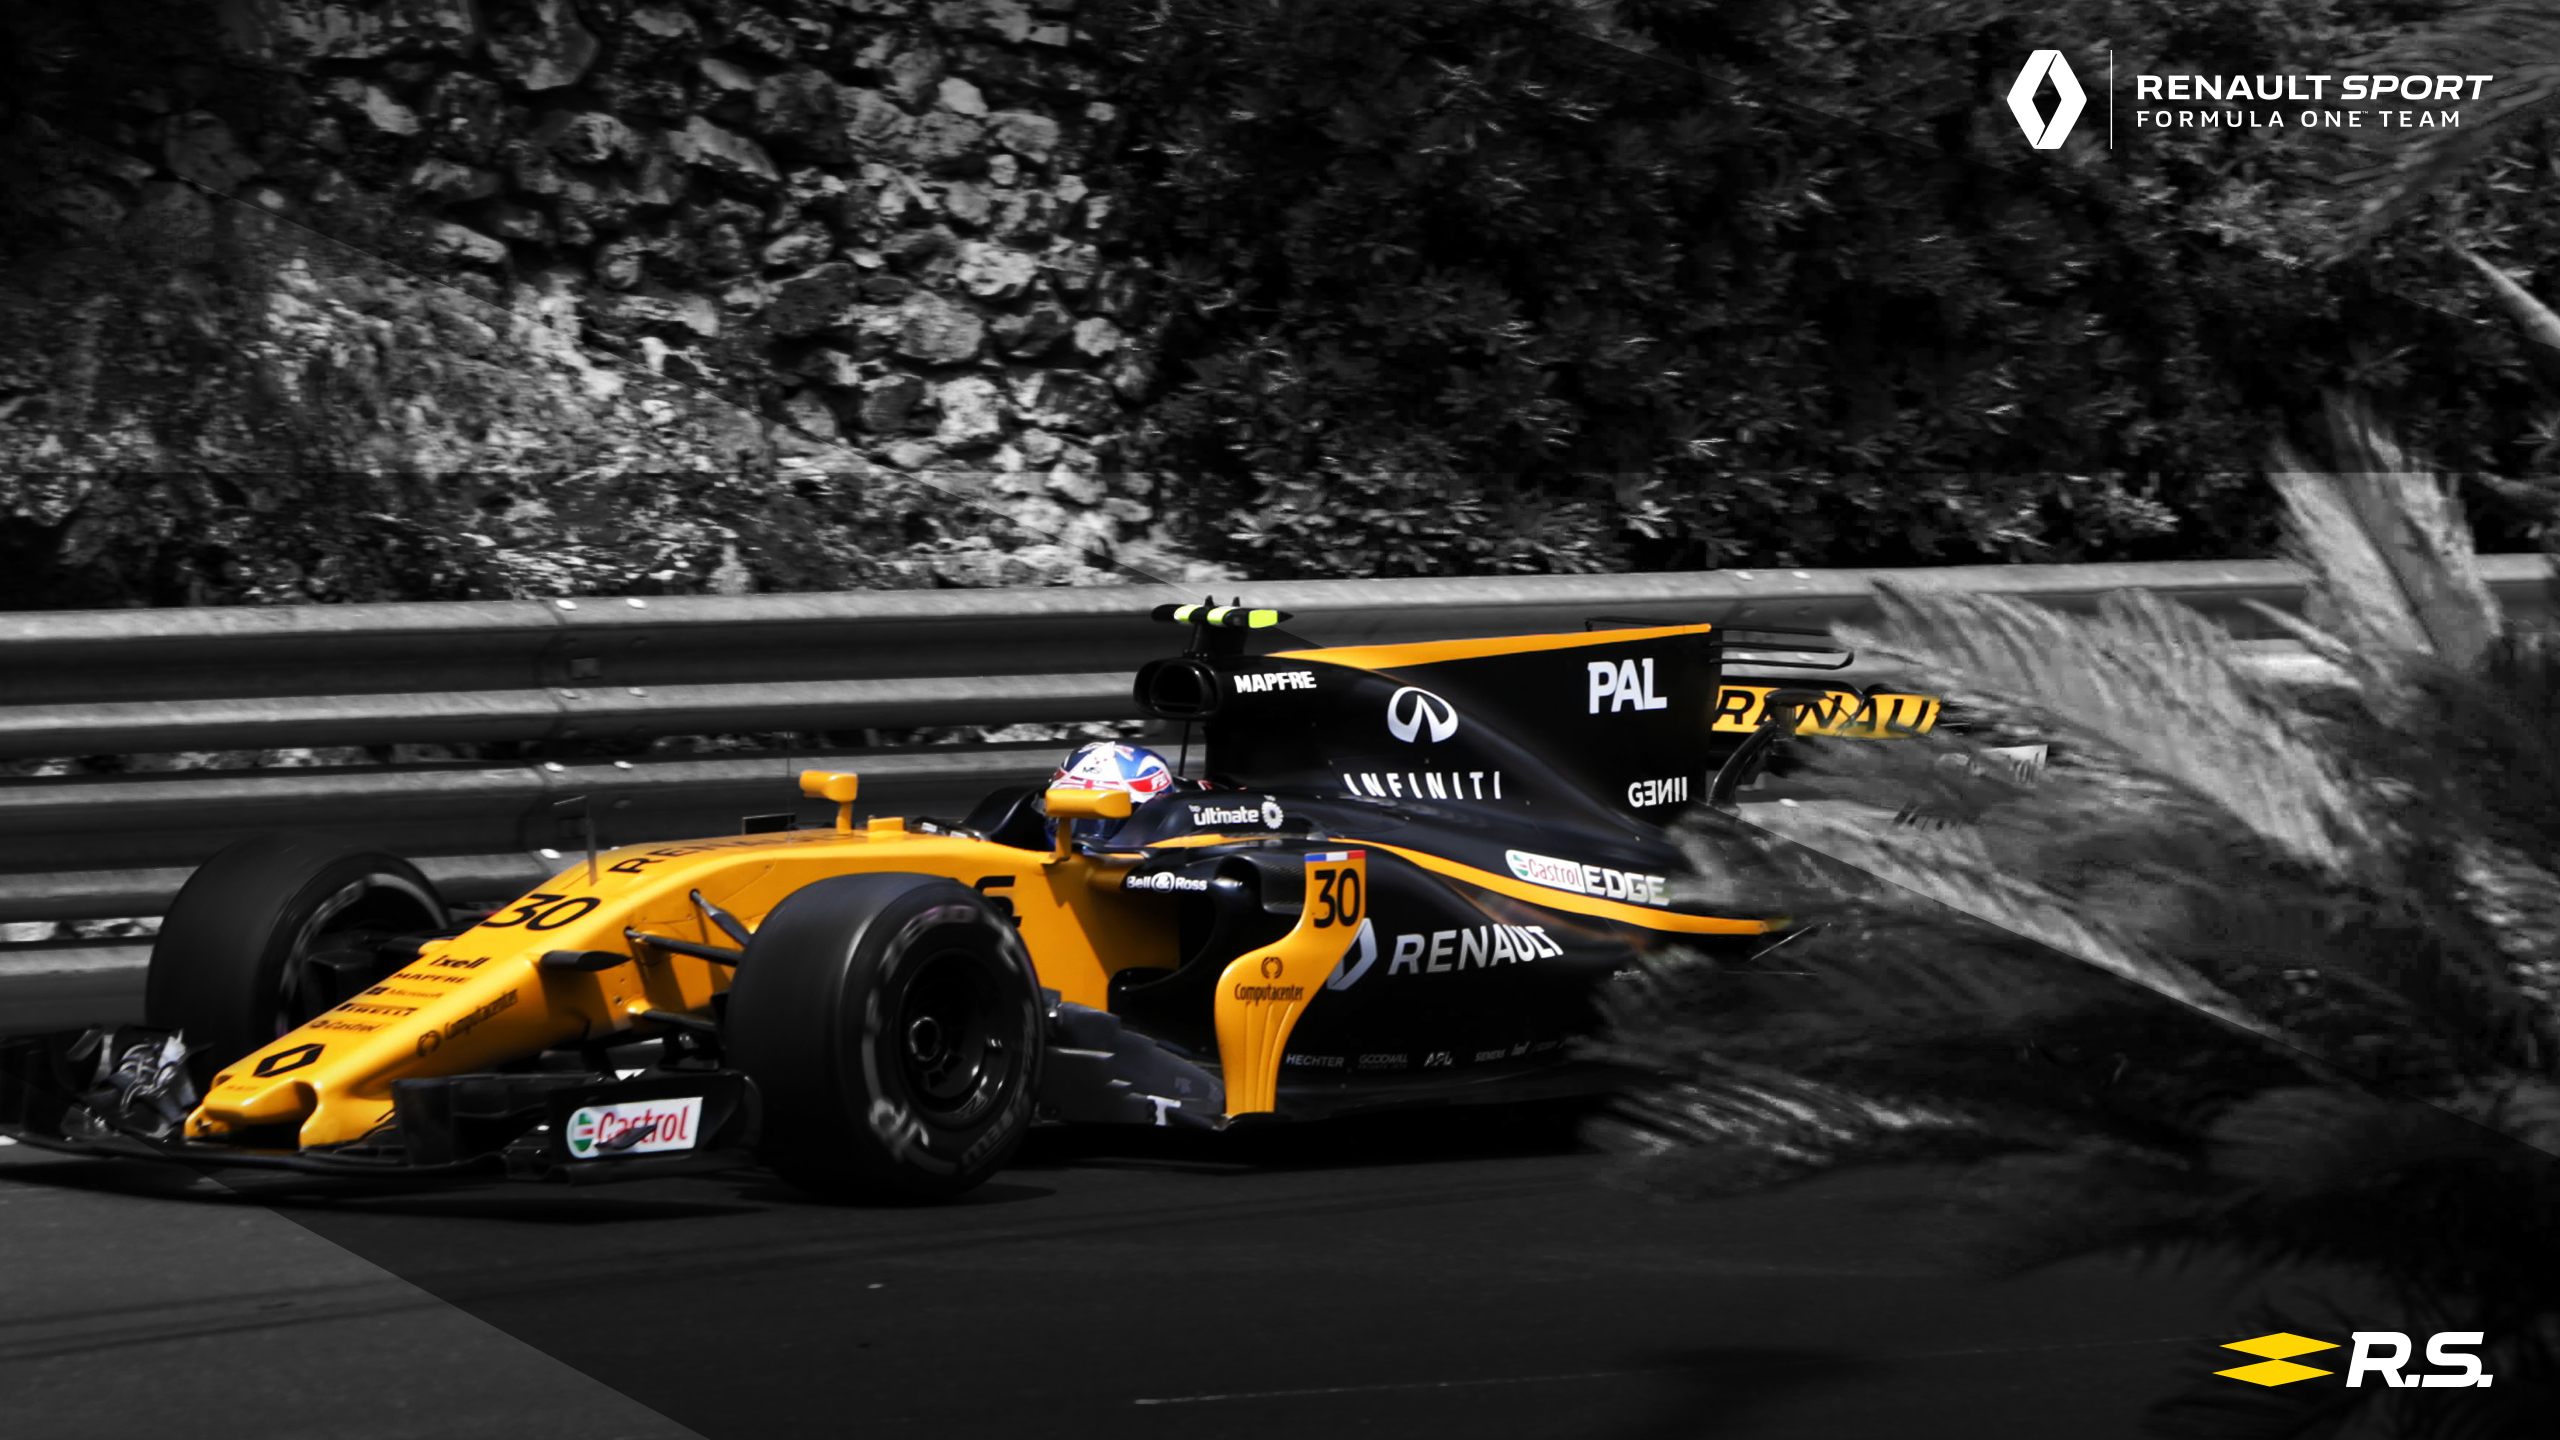 Formula One Wallpaper Posted By Christopher Johnson